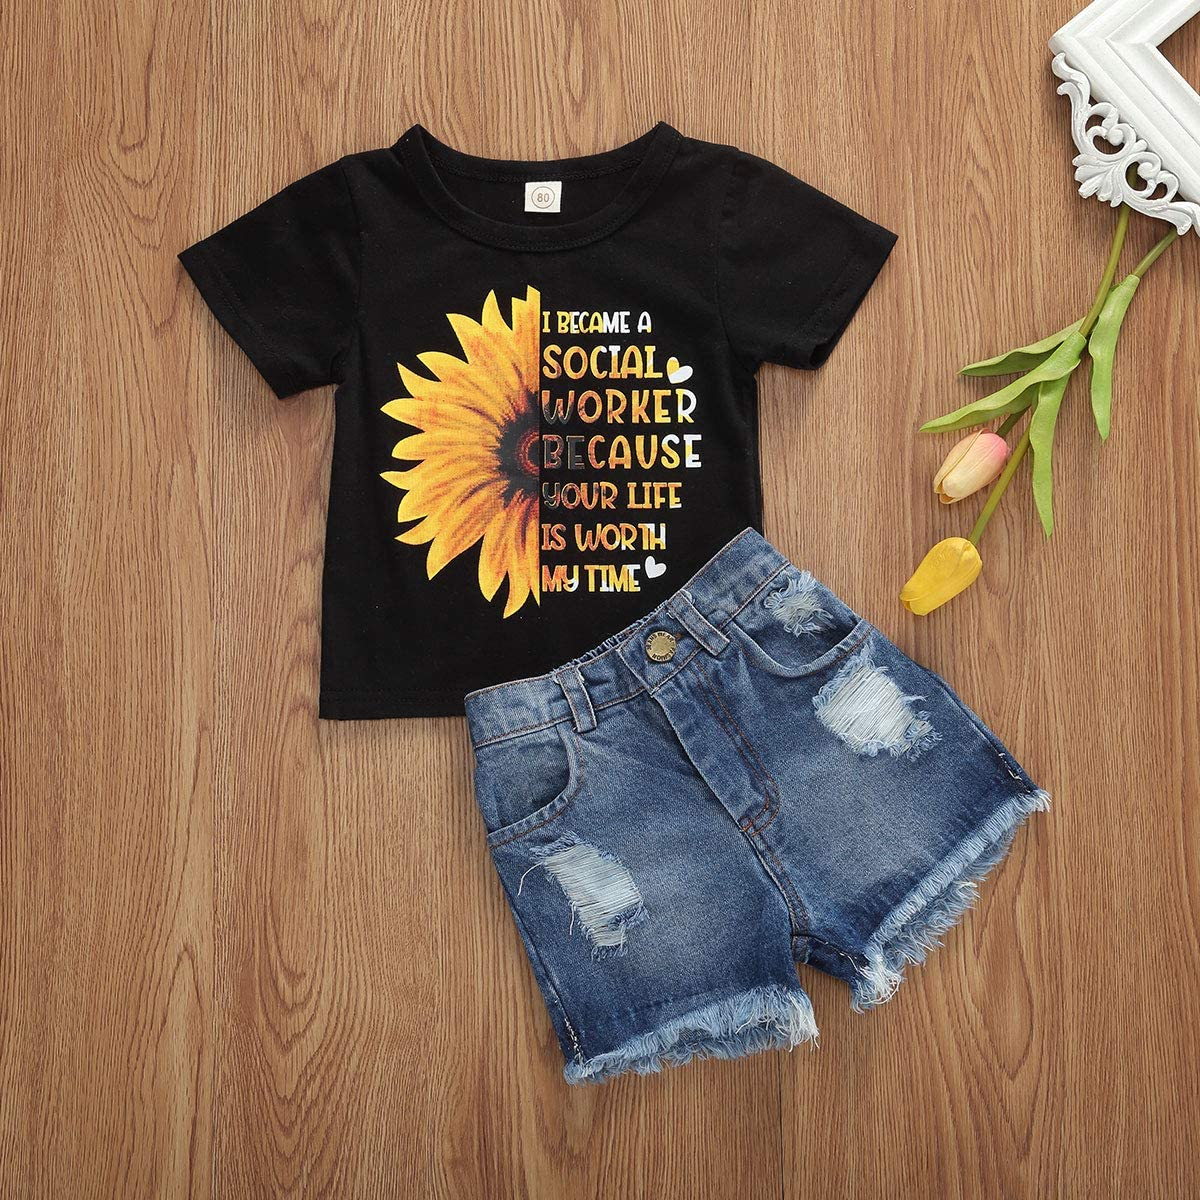 Floral Denim Shorts Outfits 2pcs//Set Toddler Kids Girl Sunflower Outfits Sleeveless Vest Tops